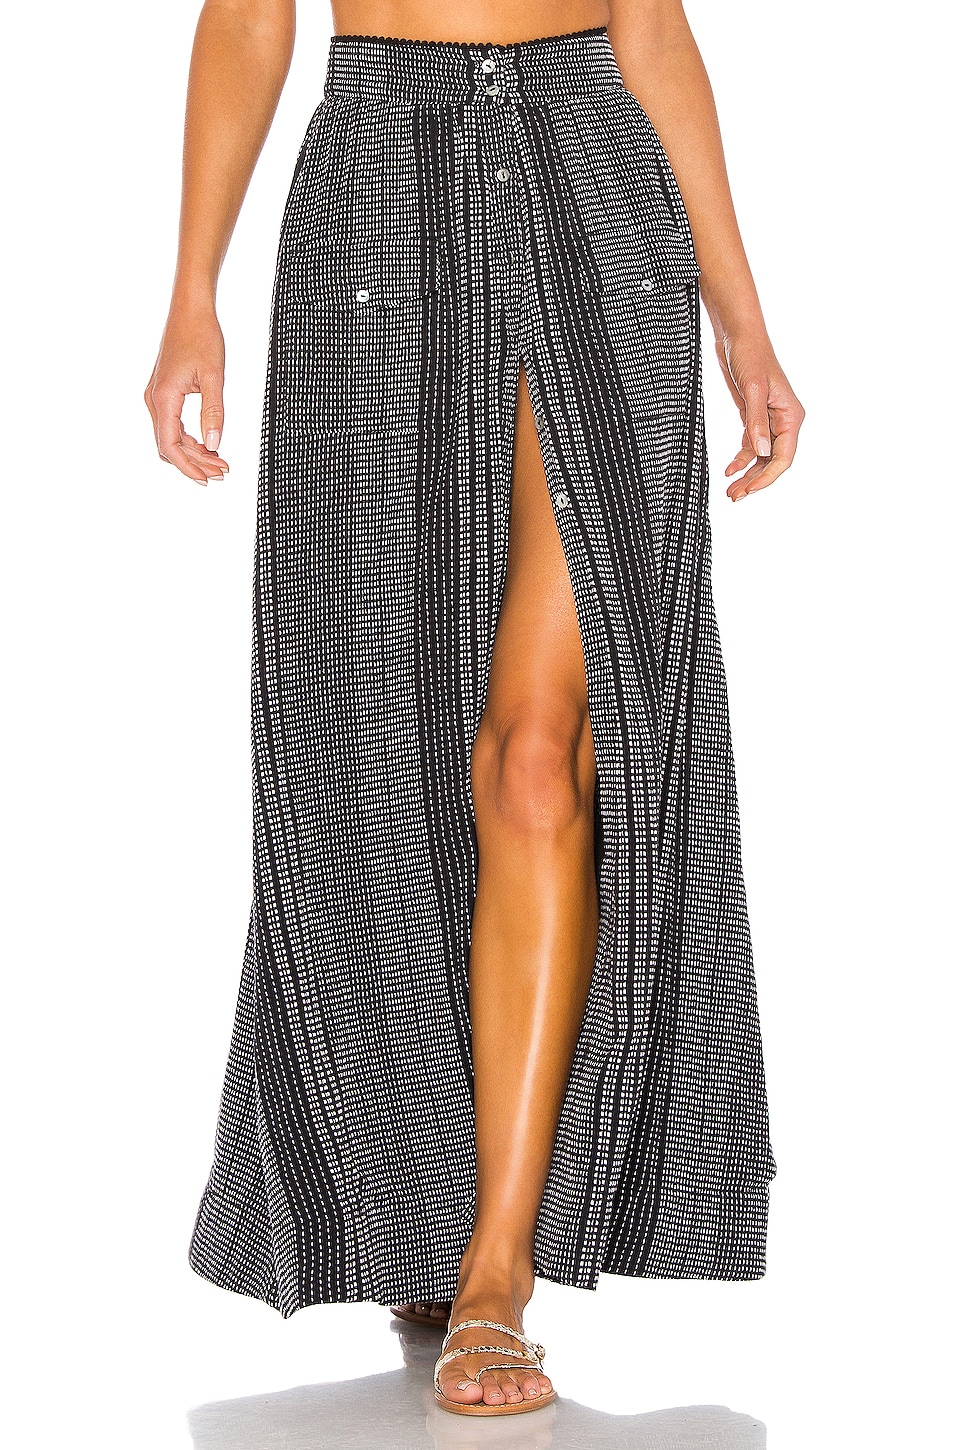 House of Harlow 1960 X REVOLVE Jonah Skirt in Black & White Stripe